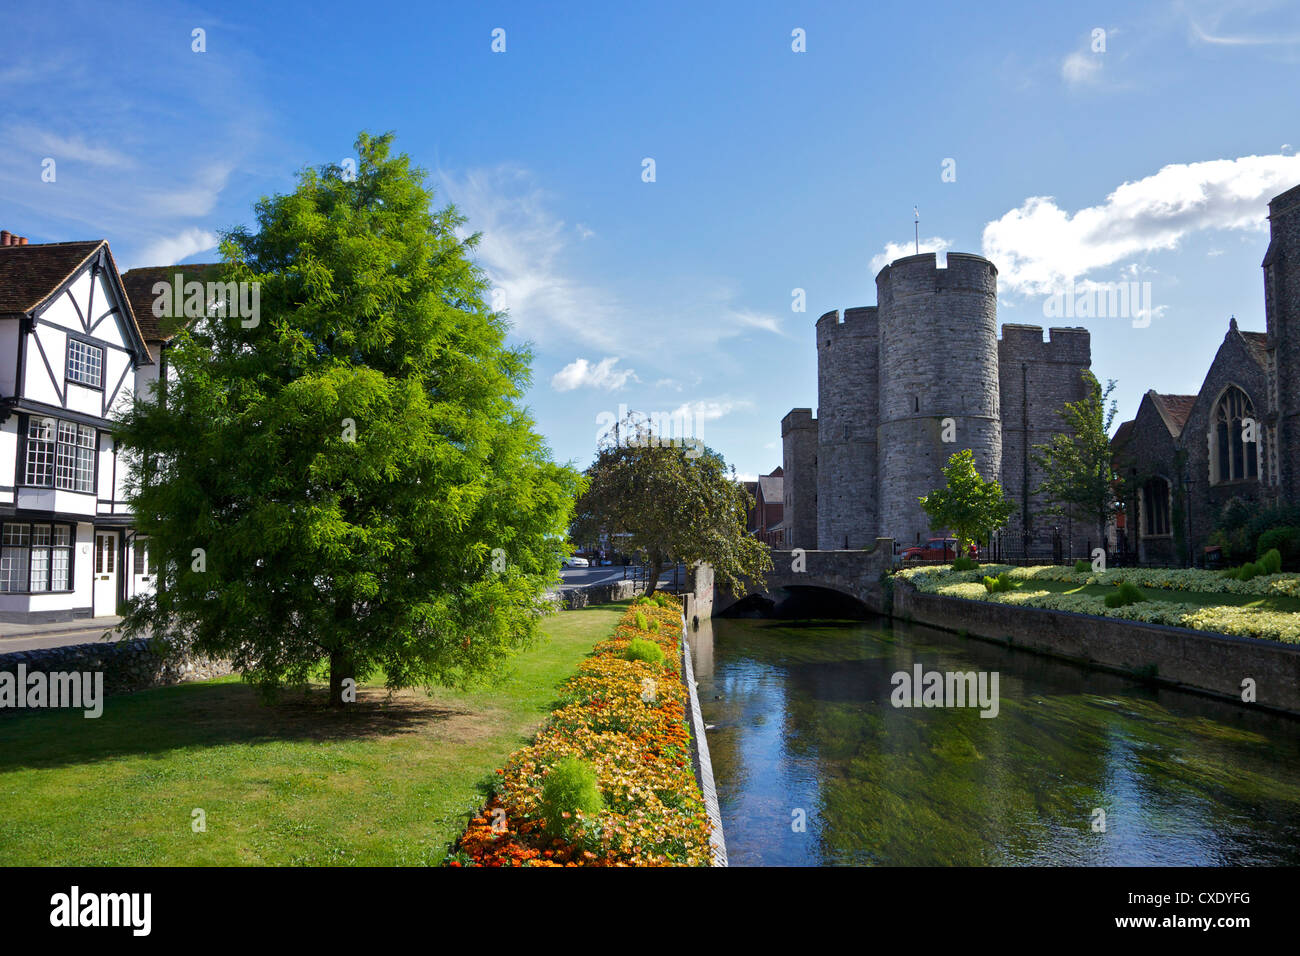 Westgate medieval gatehouse and gardens, with bridge over the River Stour, Canterbury, Kent, England, United Kingdom, - Stock Image